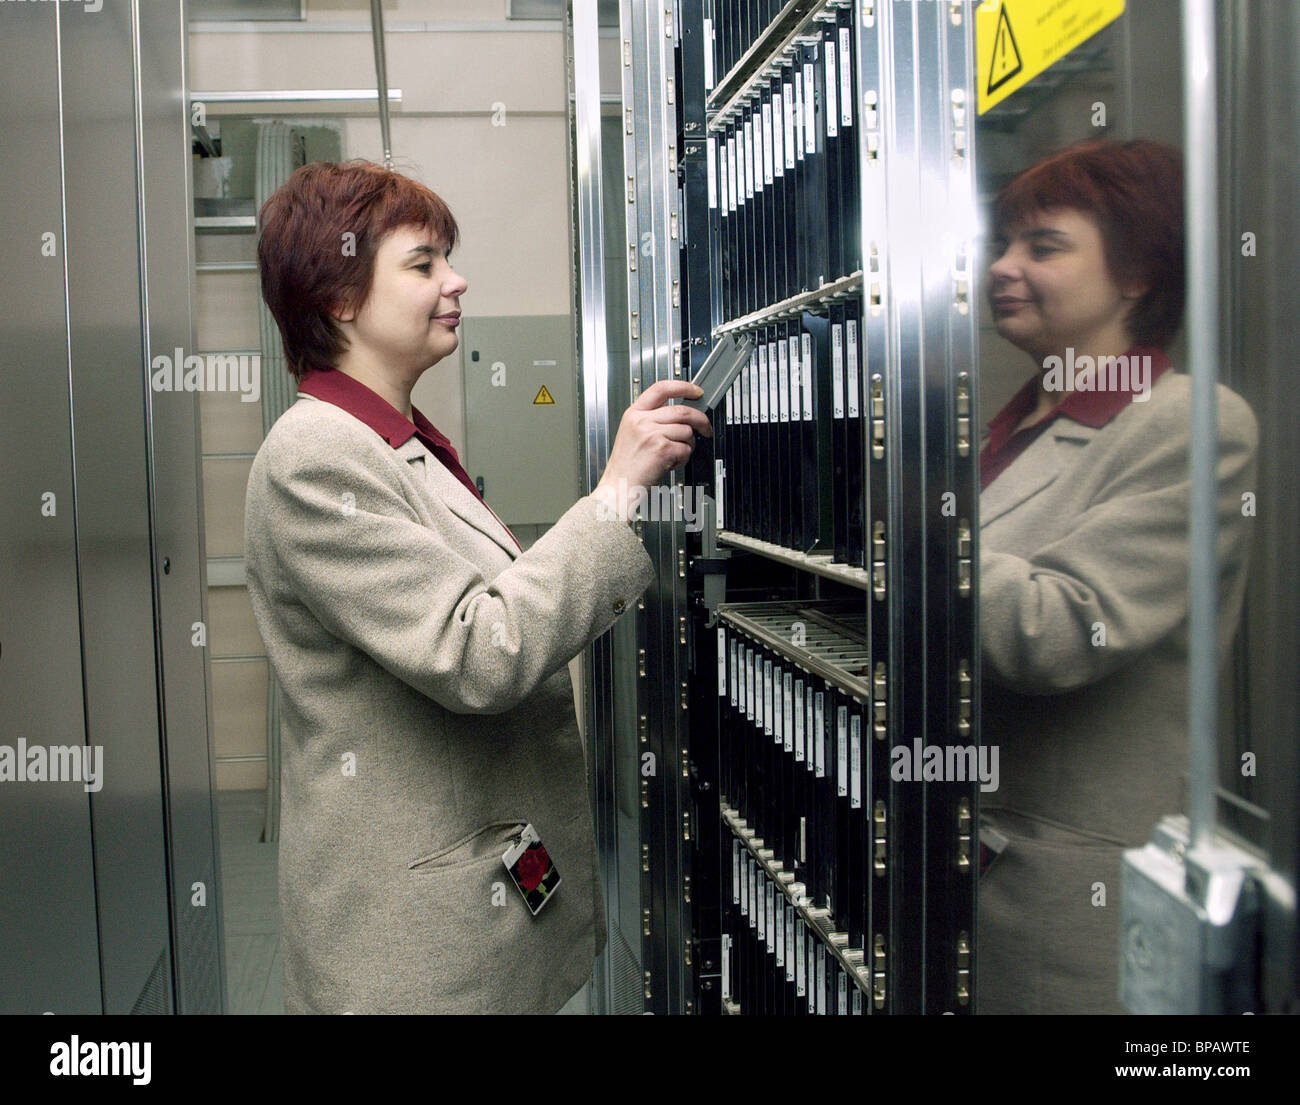 Digital equipment to be installed at Moscow telephone exchanges - Stock Image